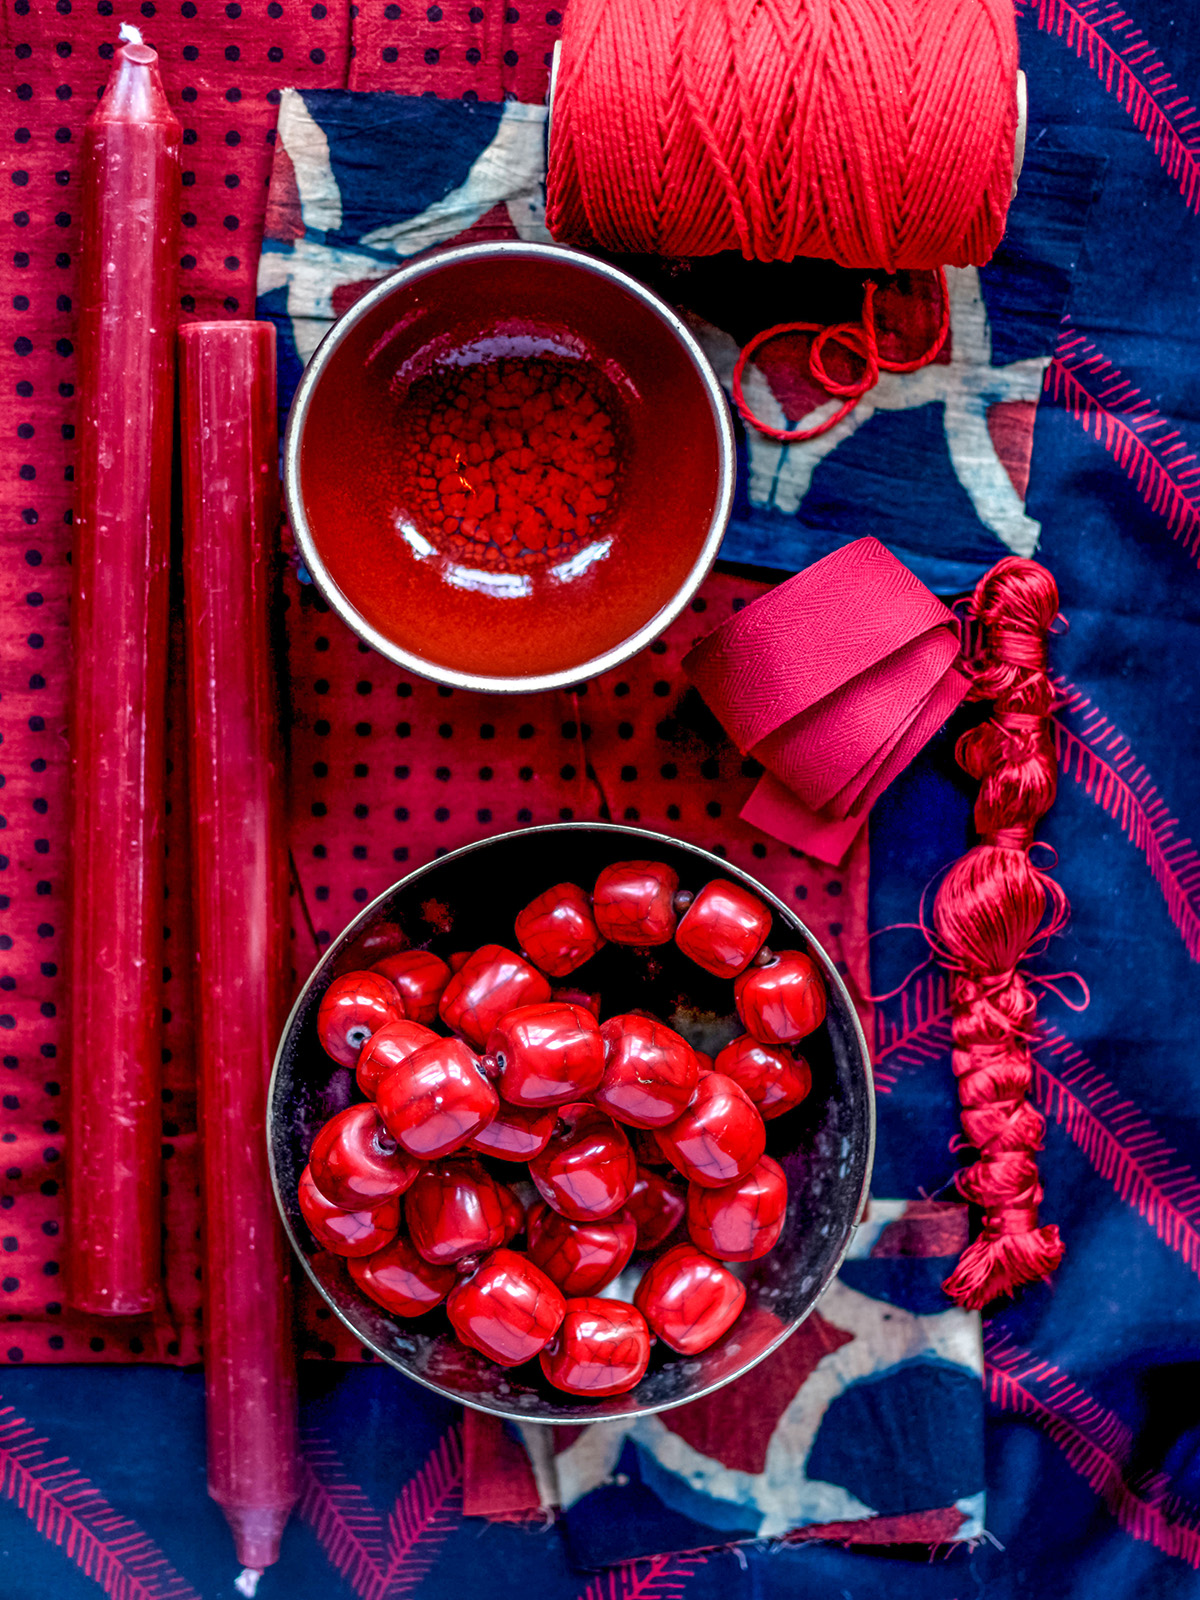 Interior designer Sophie Robinson interviews fellow colour queen Anna Starmer. Anna's still life photography illustrates her skill of using colours like this punchy royal blue and red combination #lovecolour #sophierobinson #AnnaStarmer